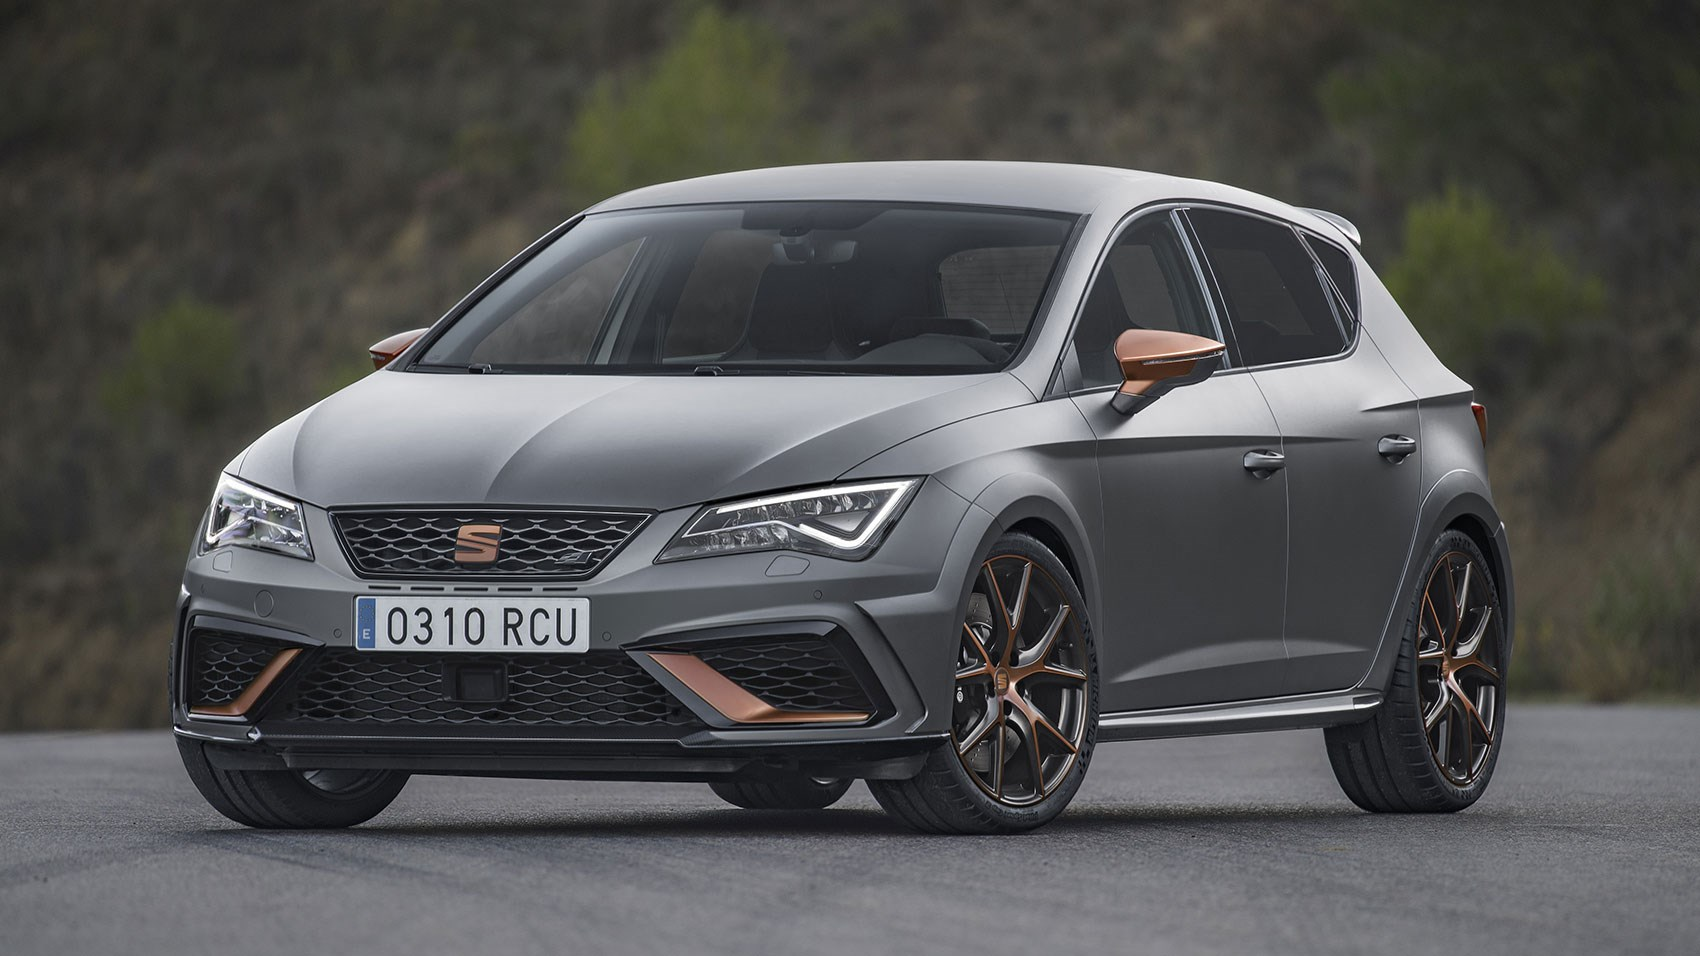 seat leon cupra r review needs more spice car magazine. Black Bedroom Furniture Sets. Home Design Ideas